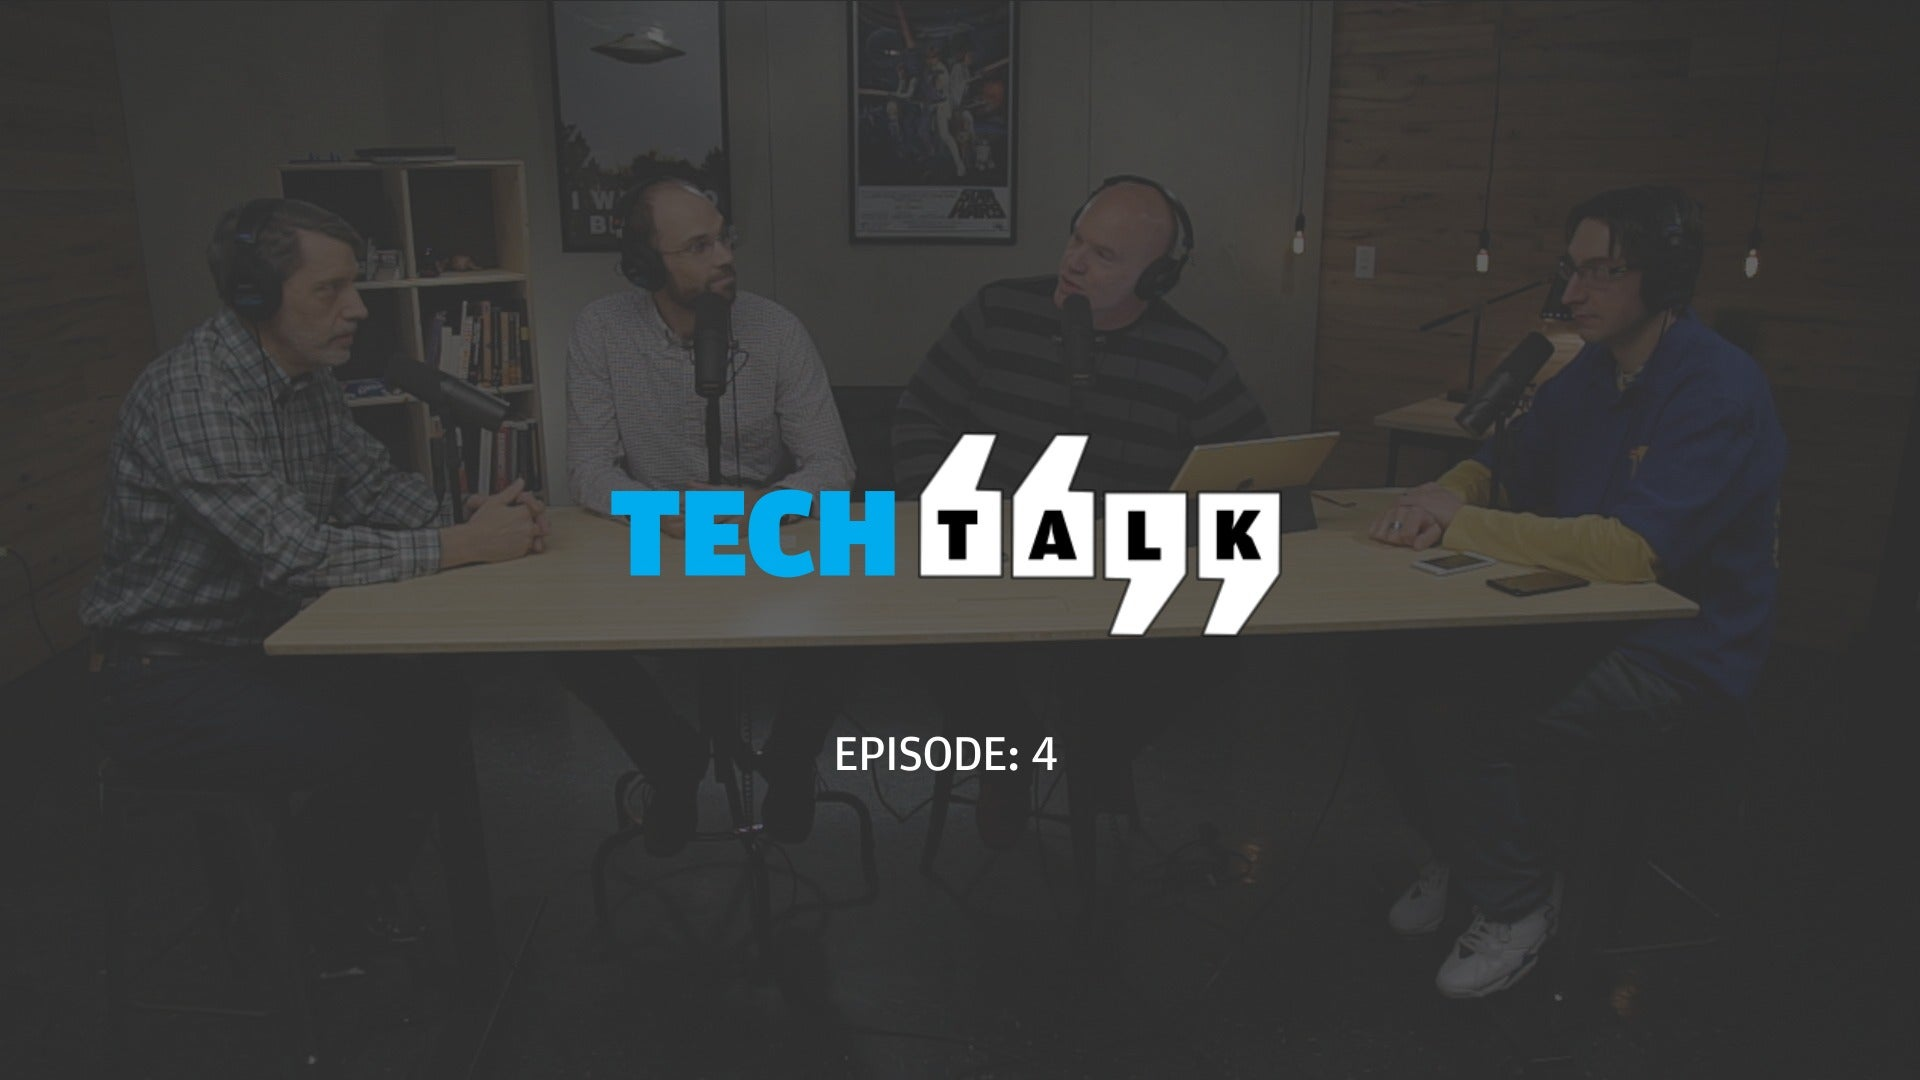 Tech Talk: Uber hack, Google tracks, AWS packs (in China) ... and Firefox is back